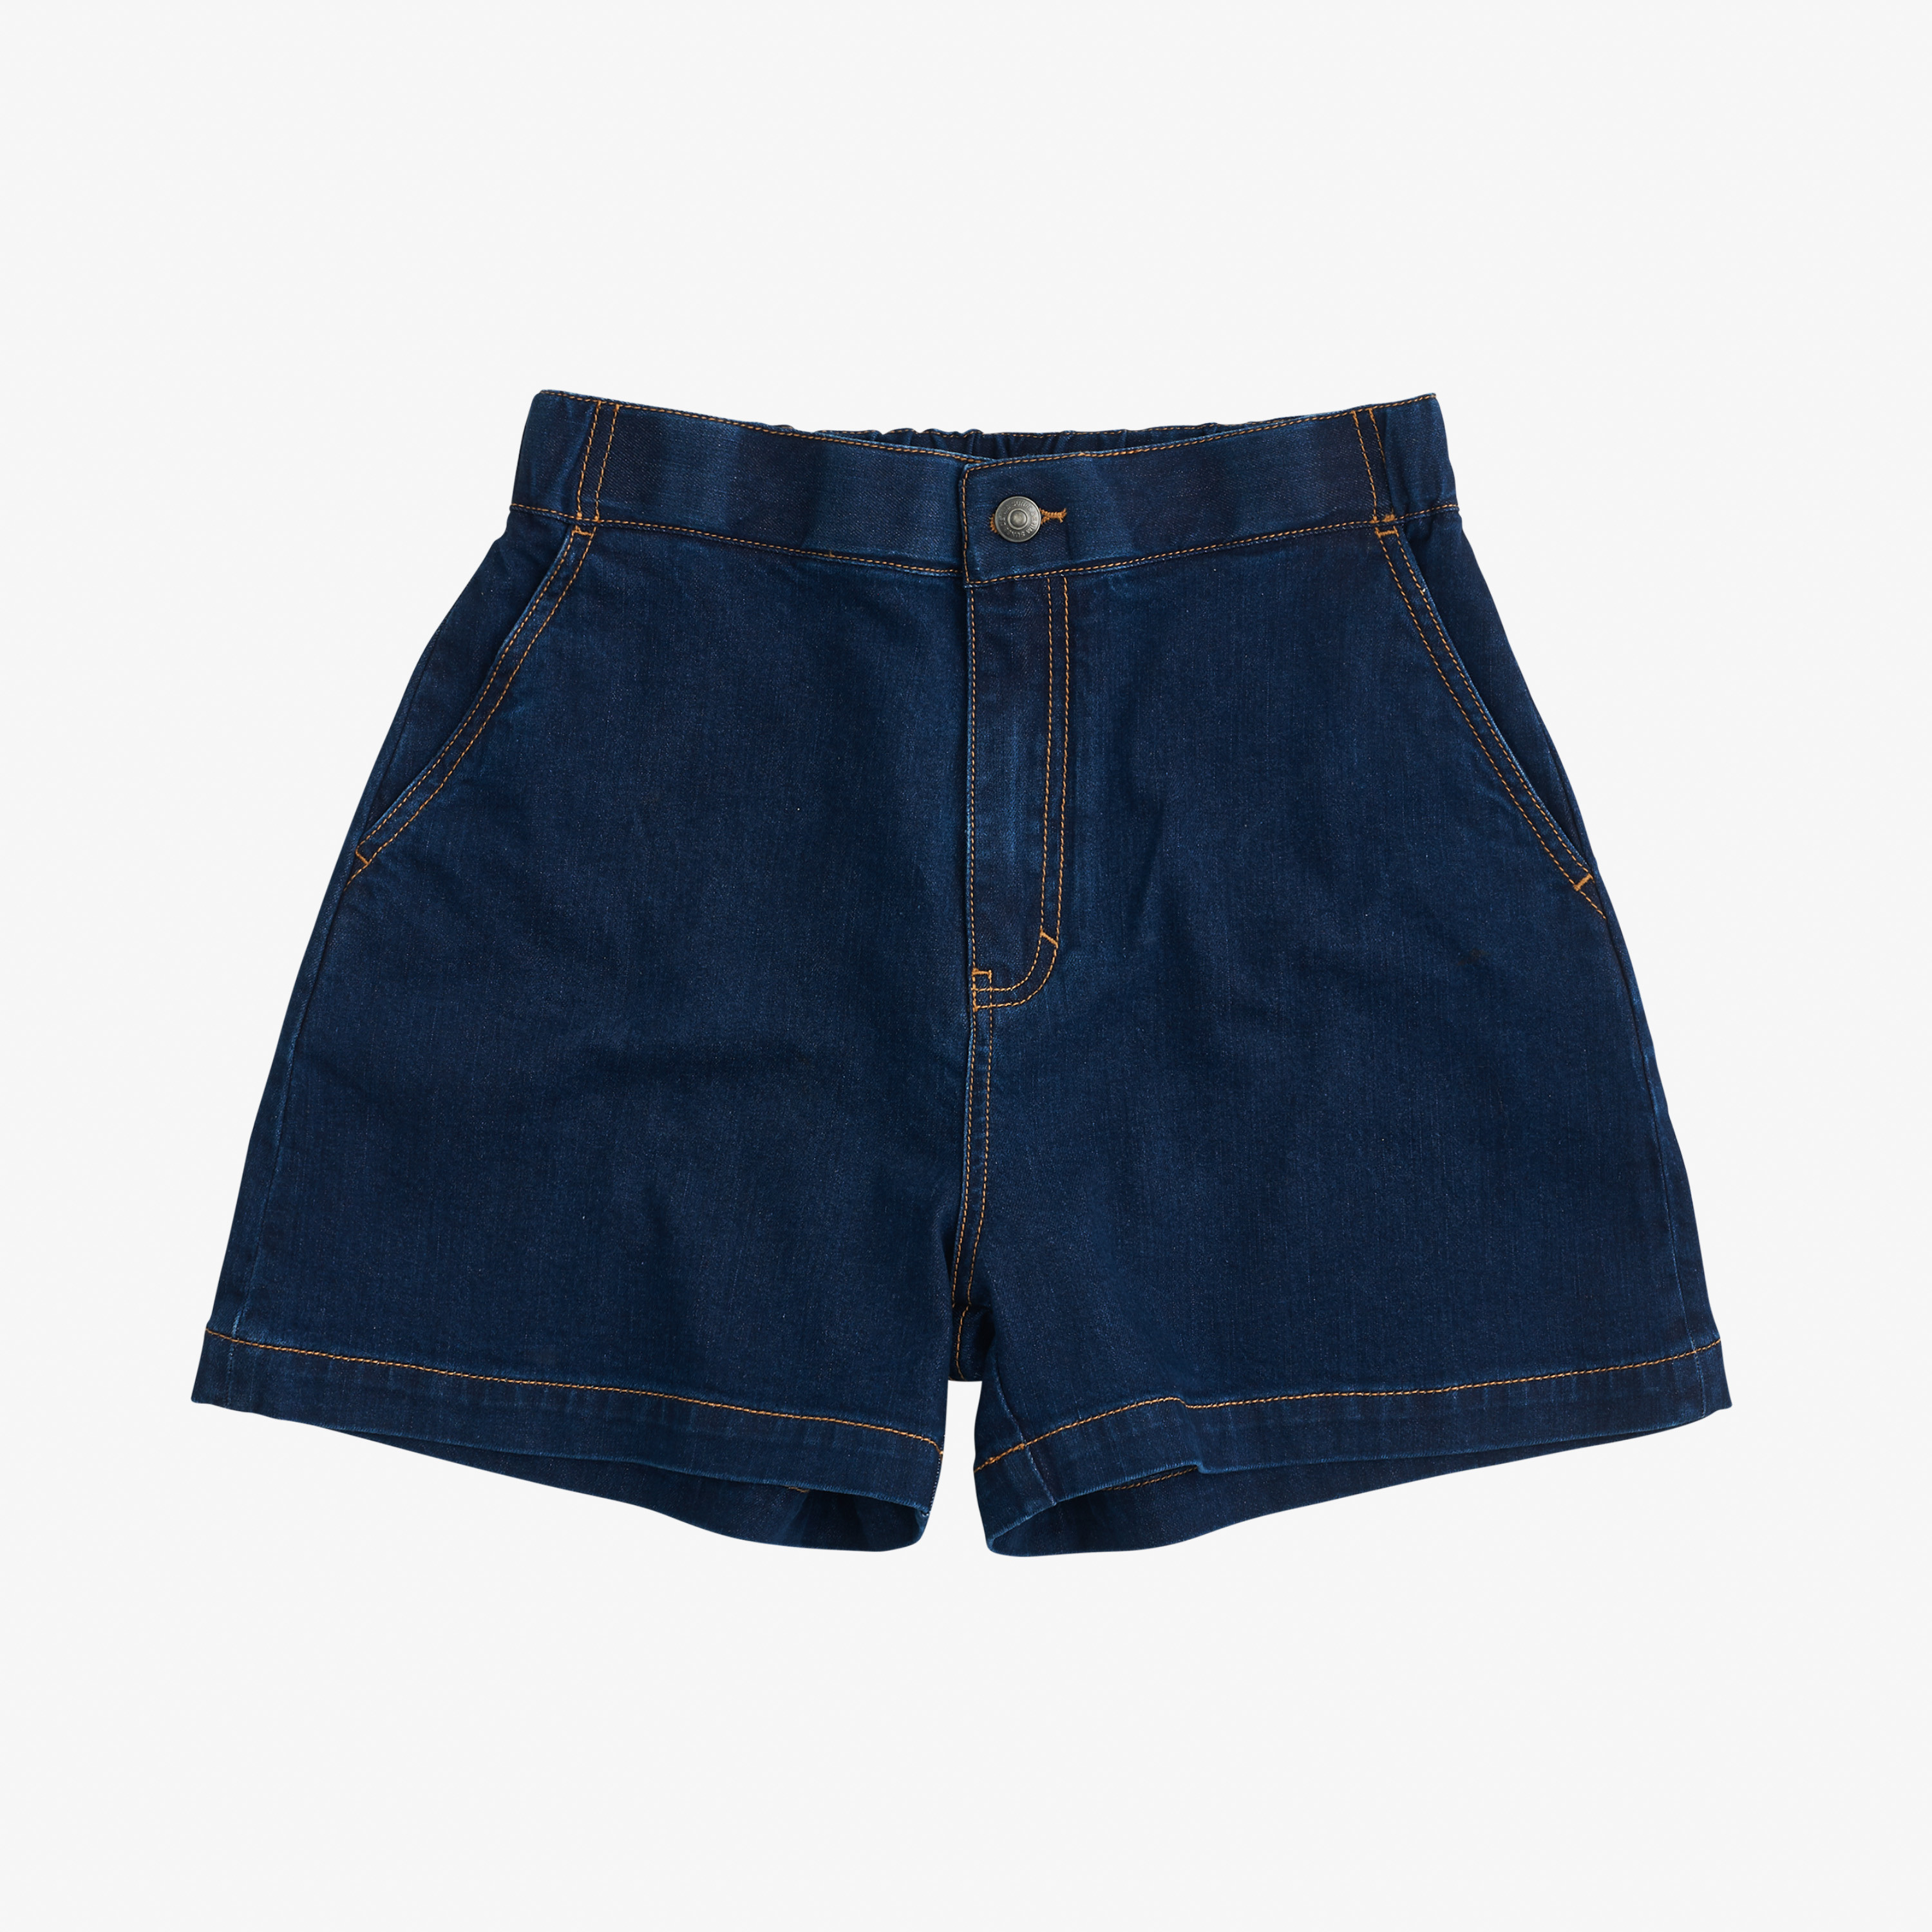 DENIM SHORTS NAVY BLUE